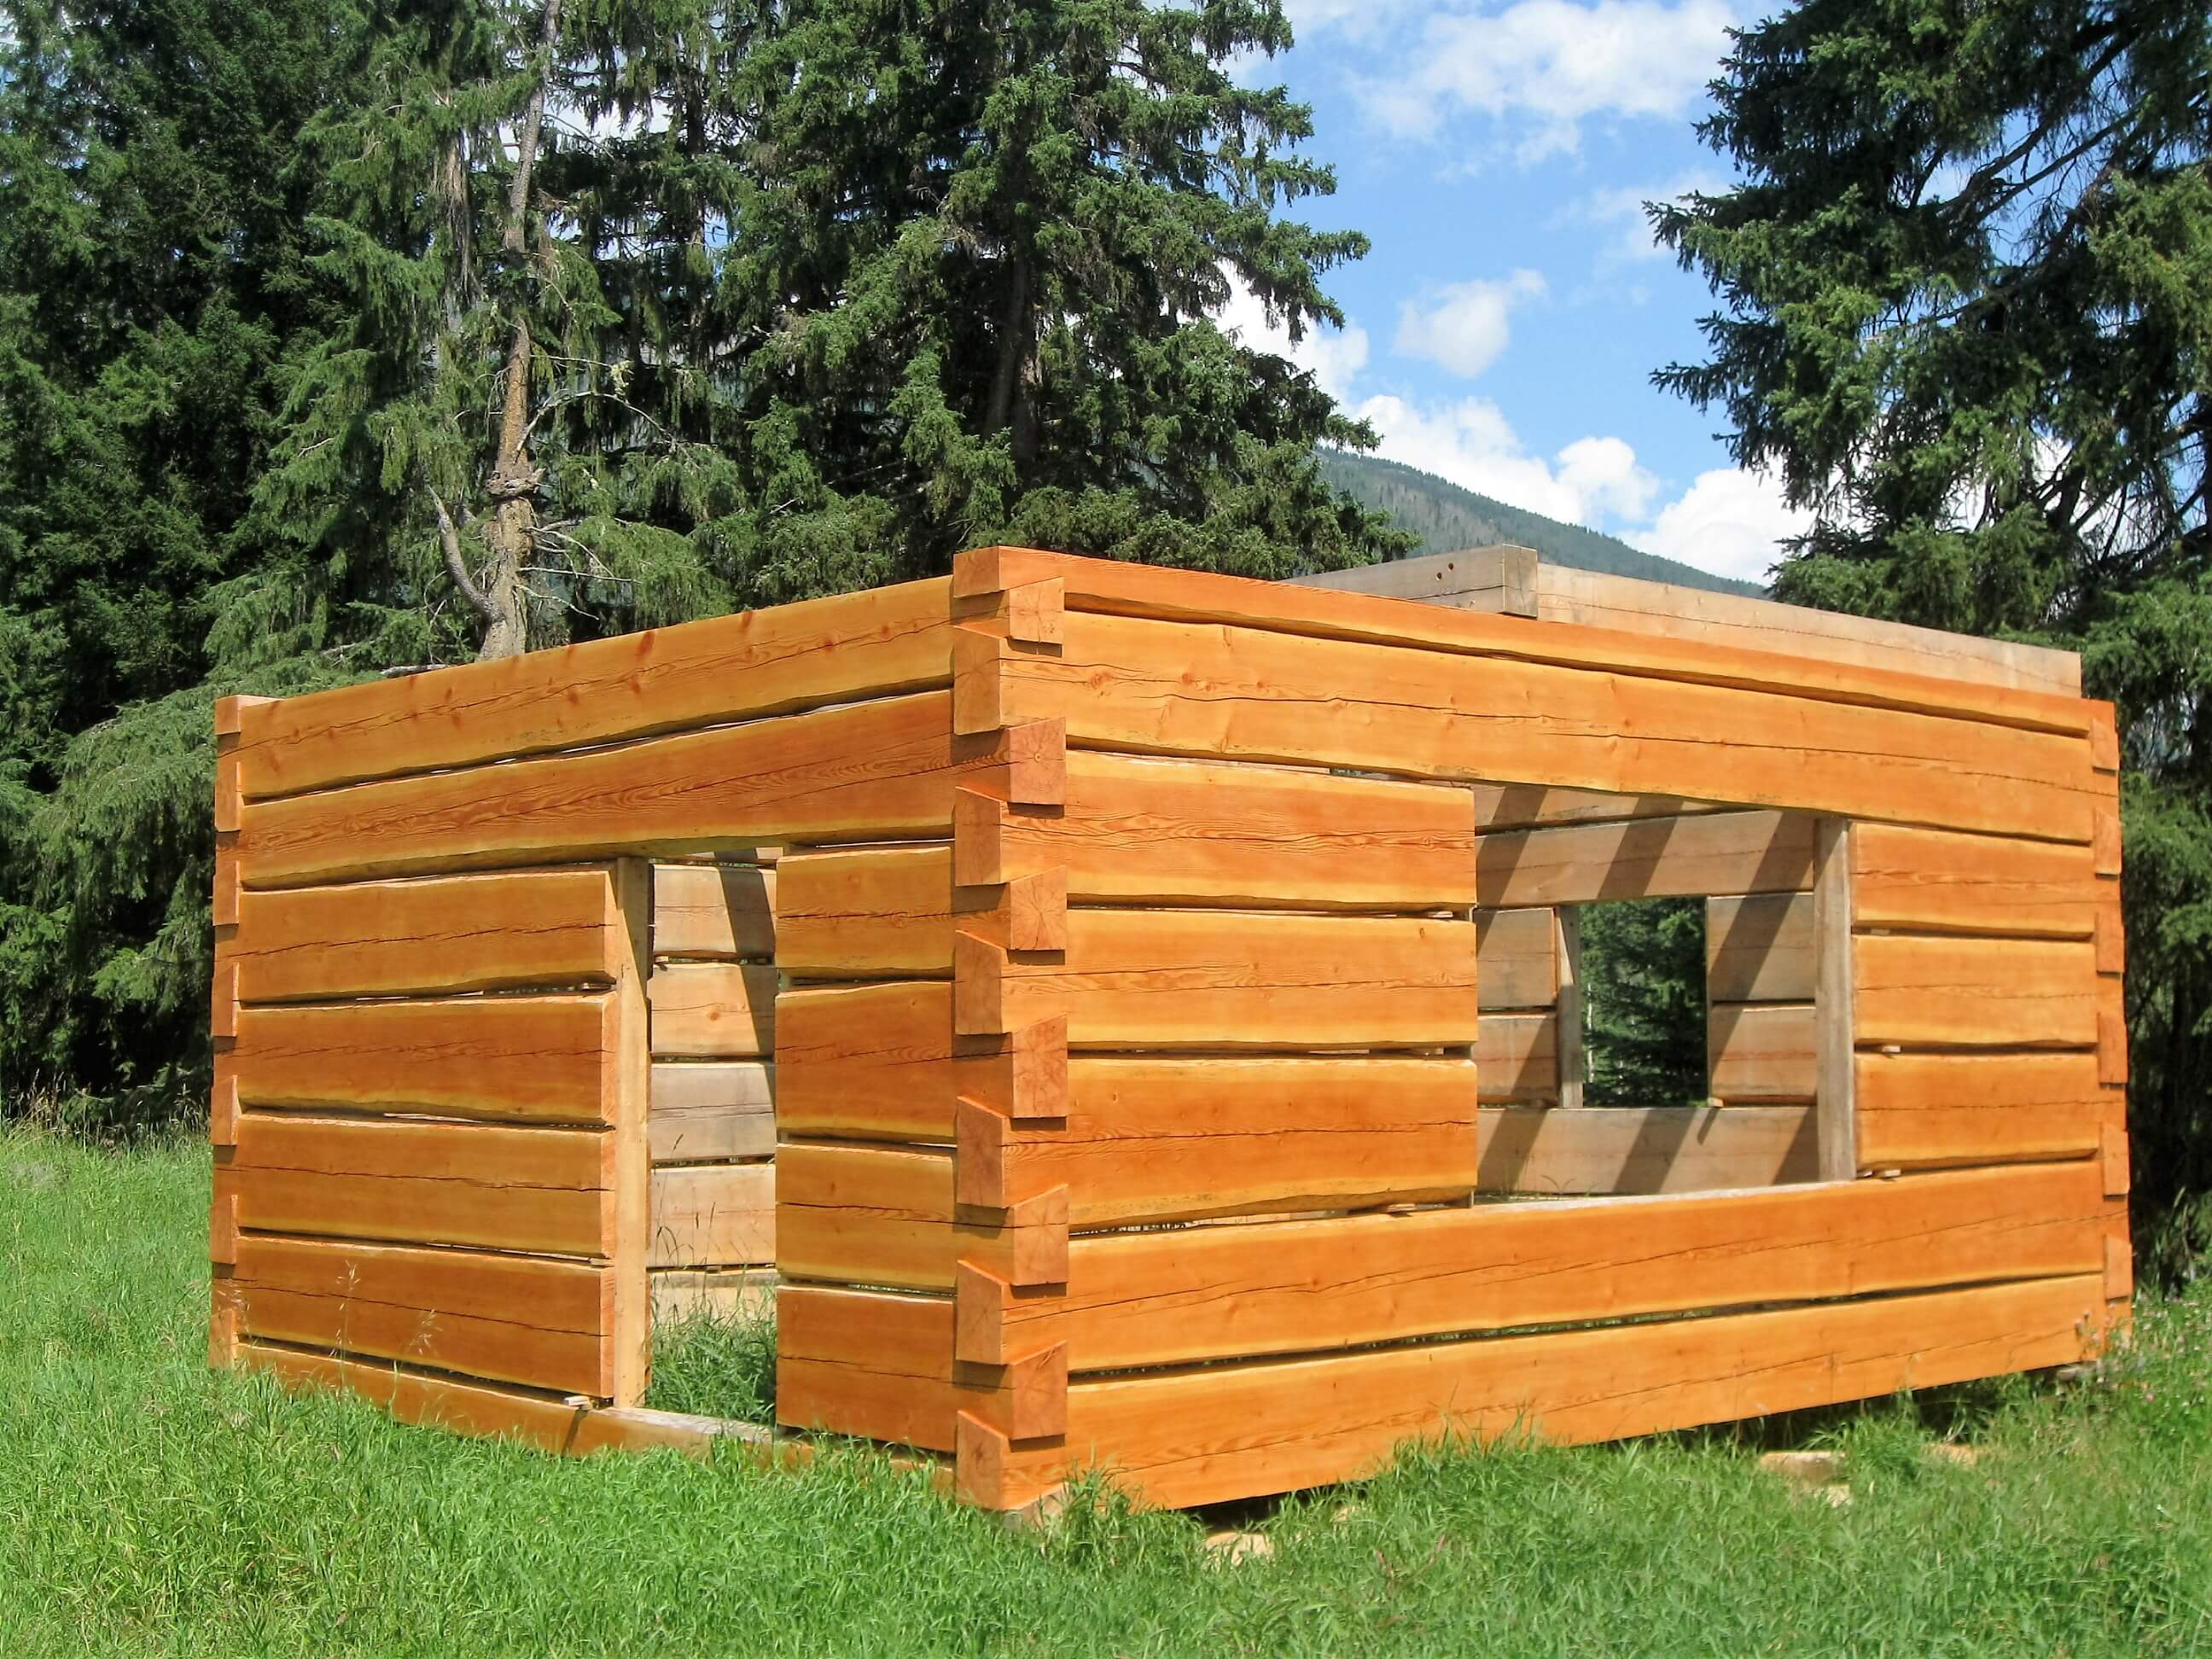 Log Cabin Hub - Your home for Log Cabins